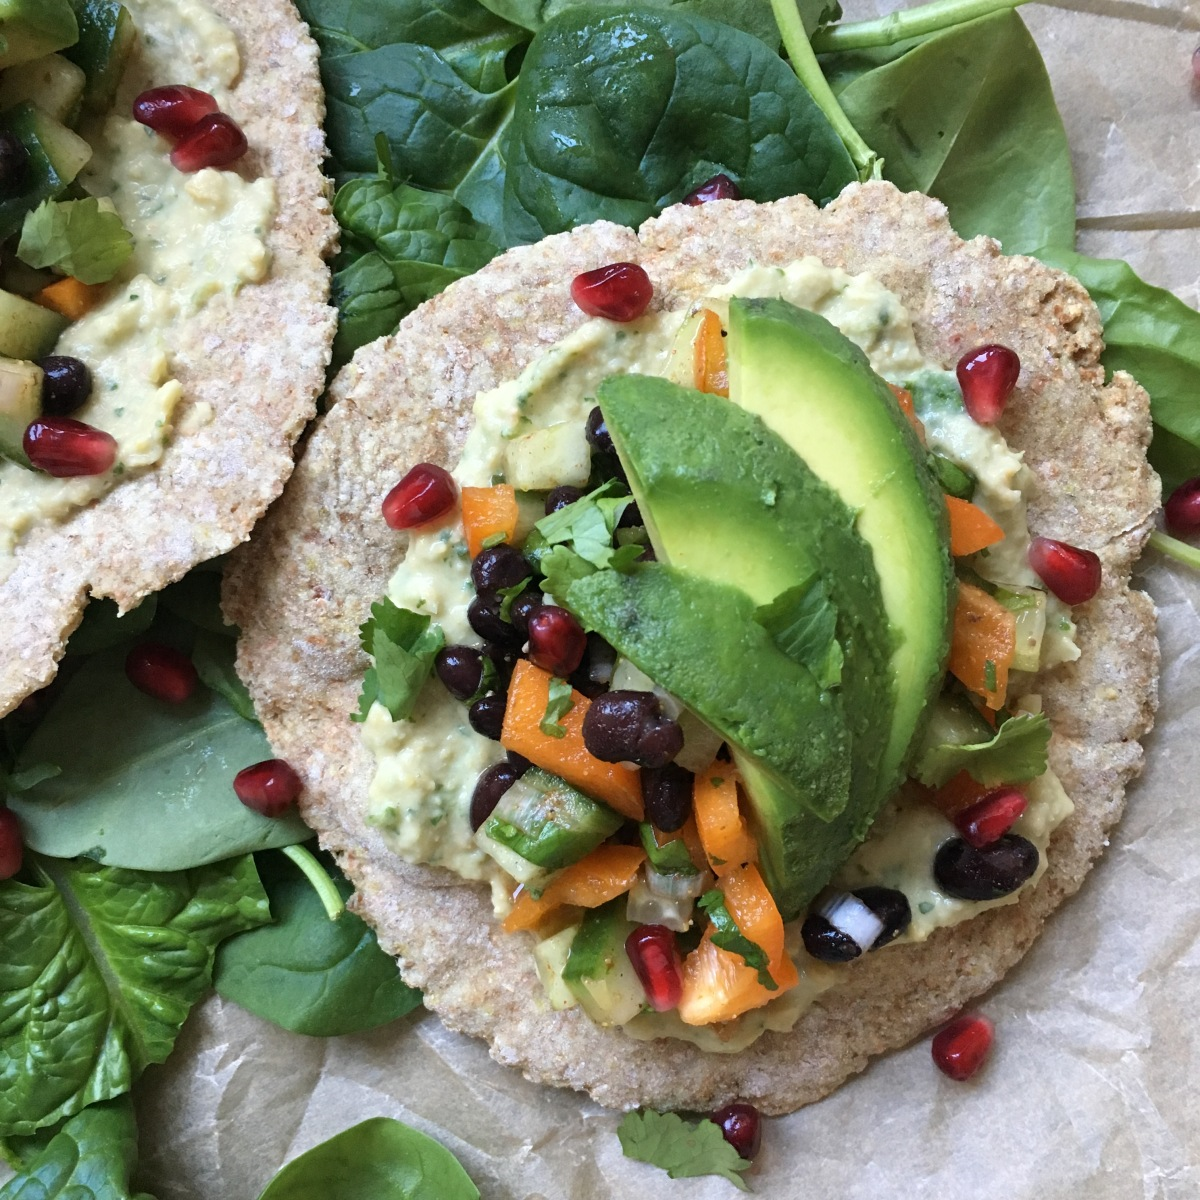 Easy Fluffy Flatbread with Hummus and Avocado